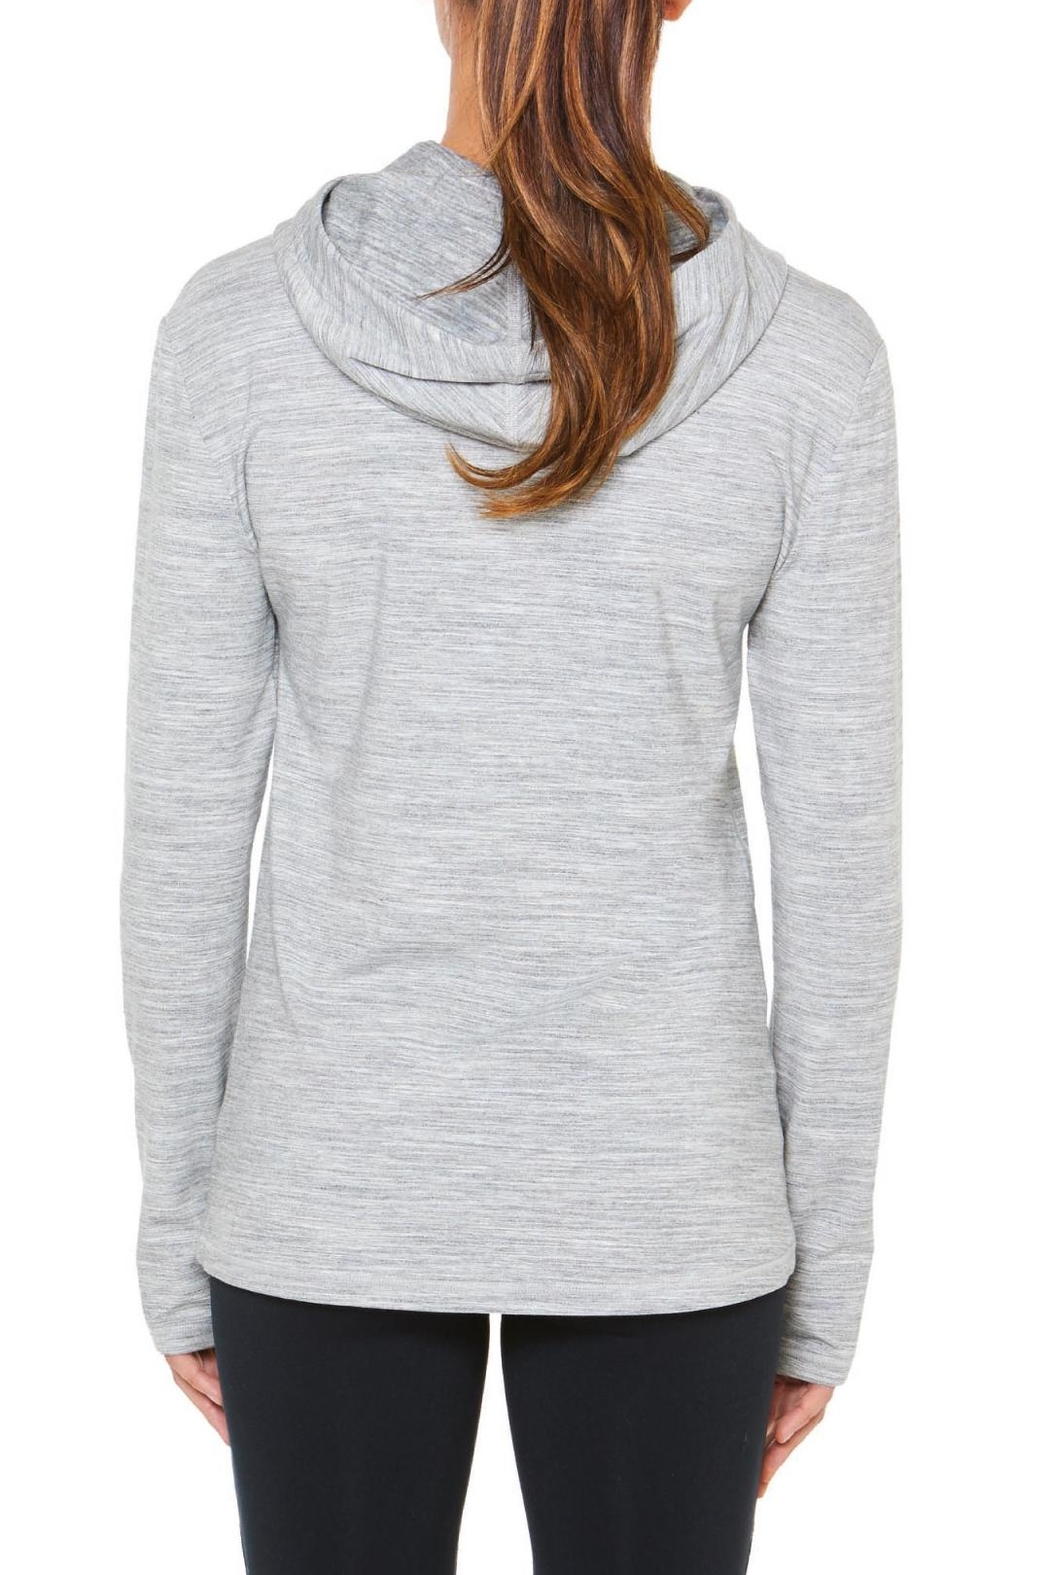 SHAPE Activewear Cowl Pullover - Front Full Image